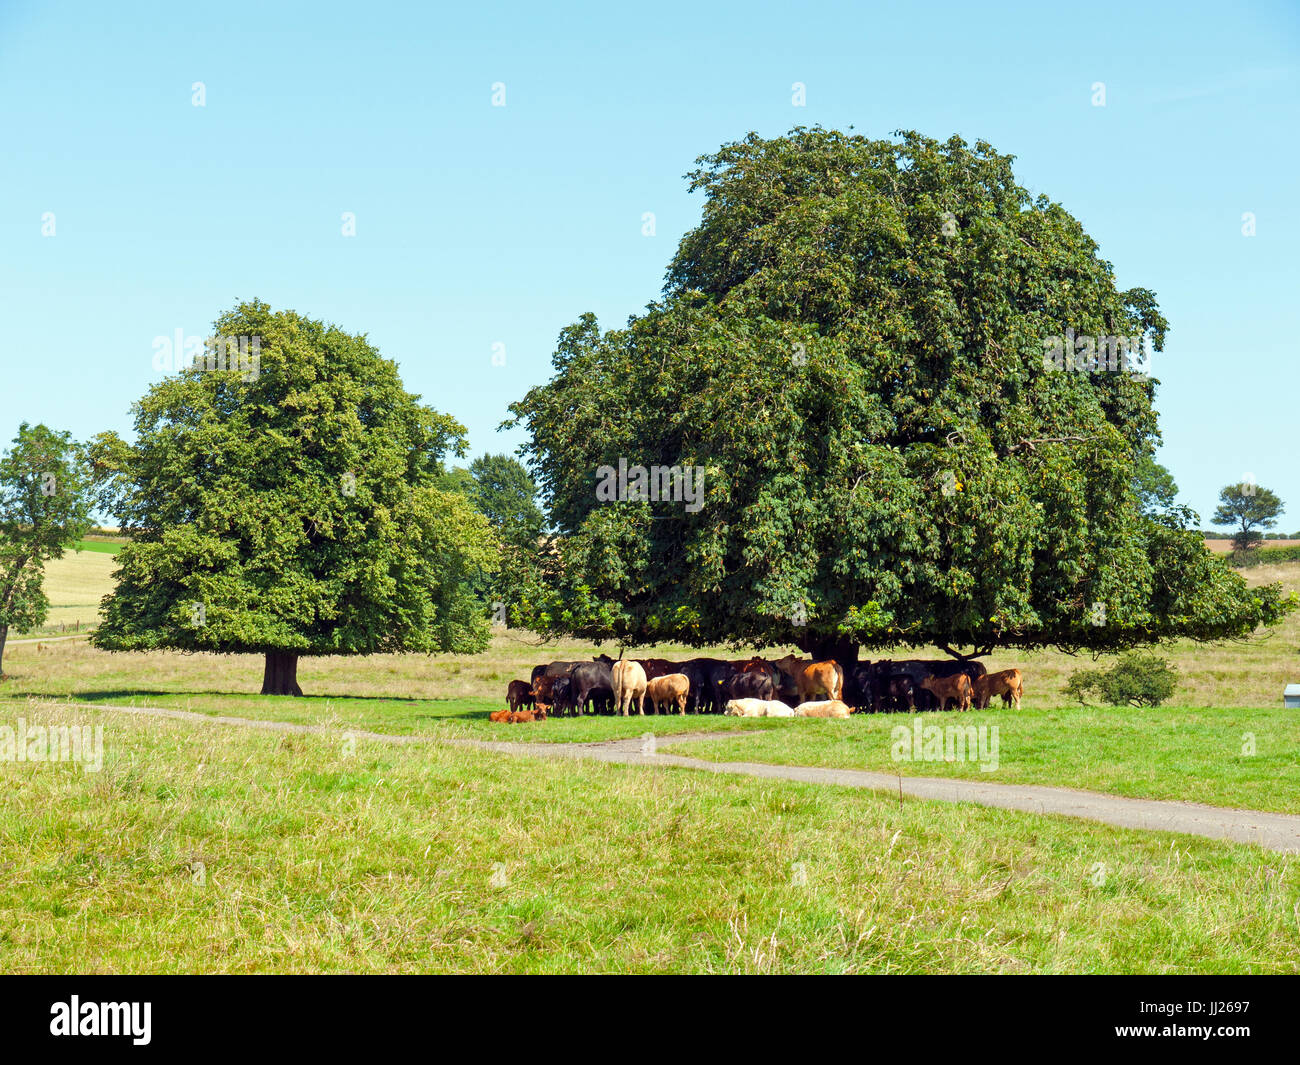 Cattle sheltering from the hot sun. - Stock Image